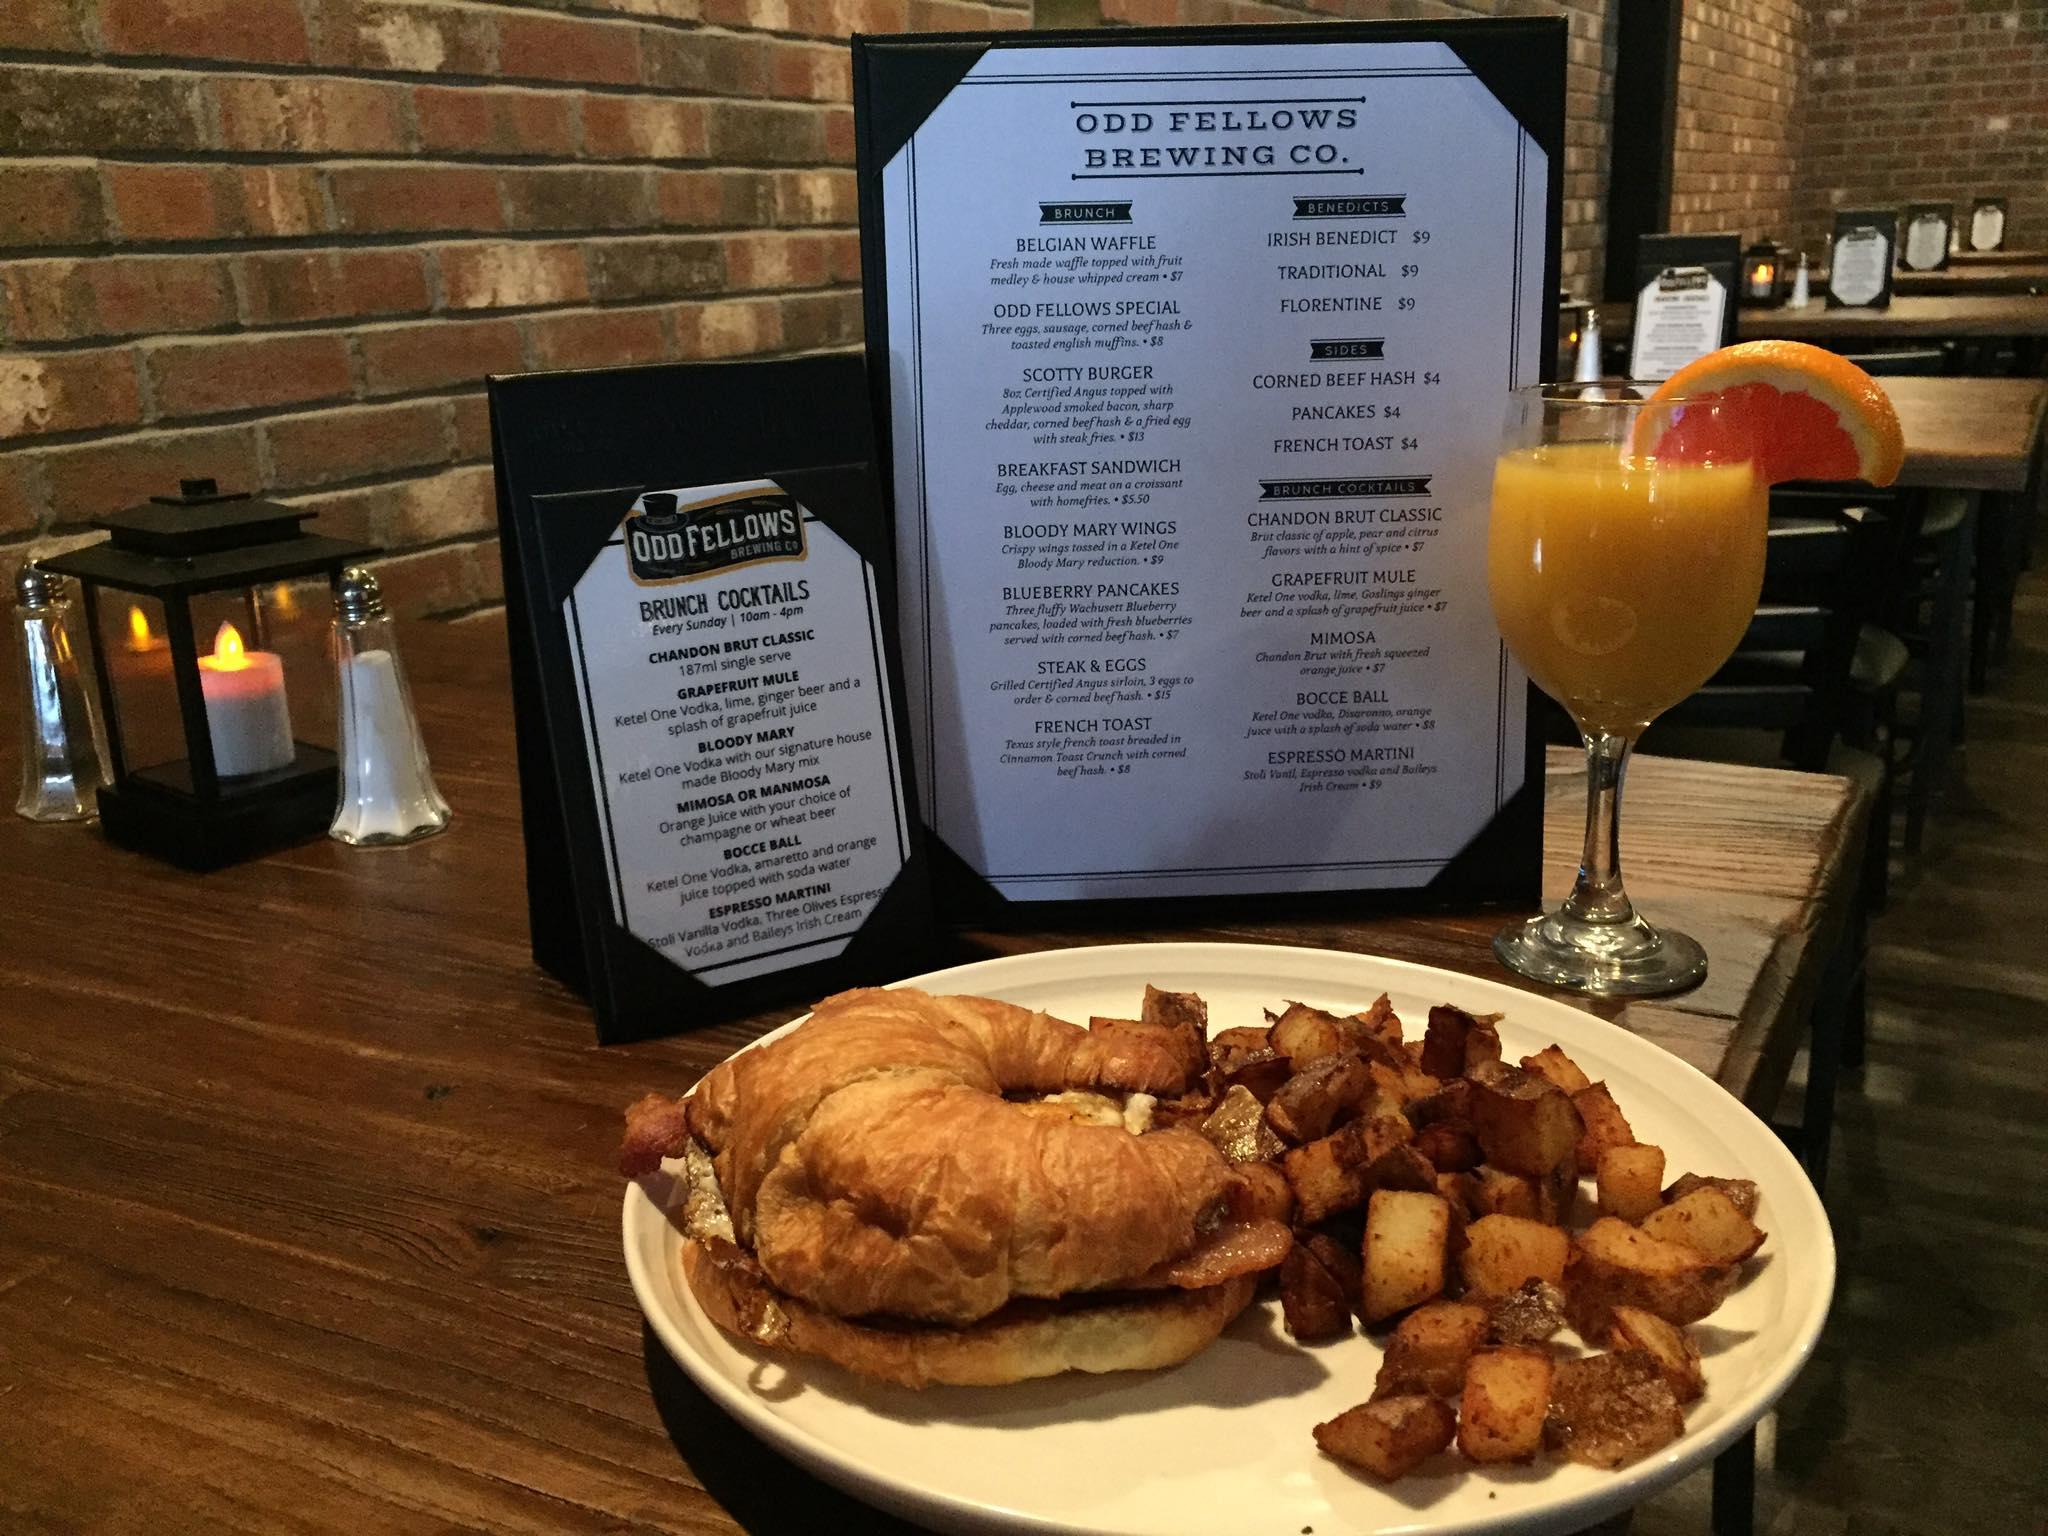 Egg, cheese and (bacon, smoked ham or corned beef hash) on a croissant with home fries, and a glass of orange juice in front of the manual menu